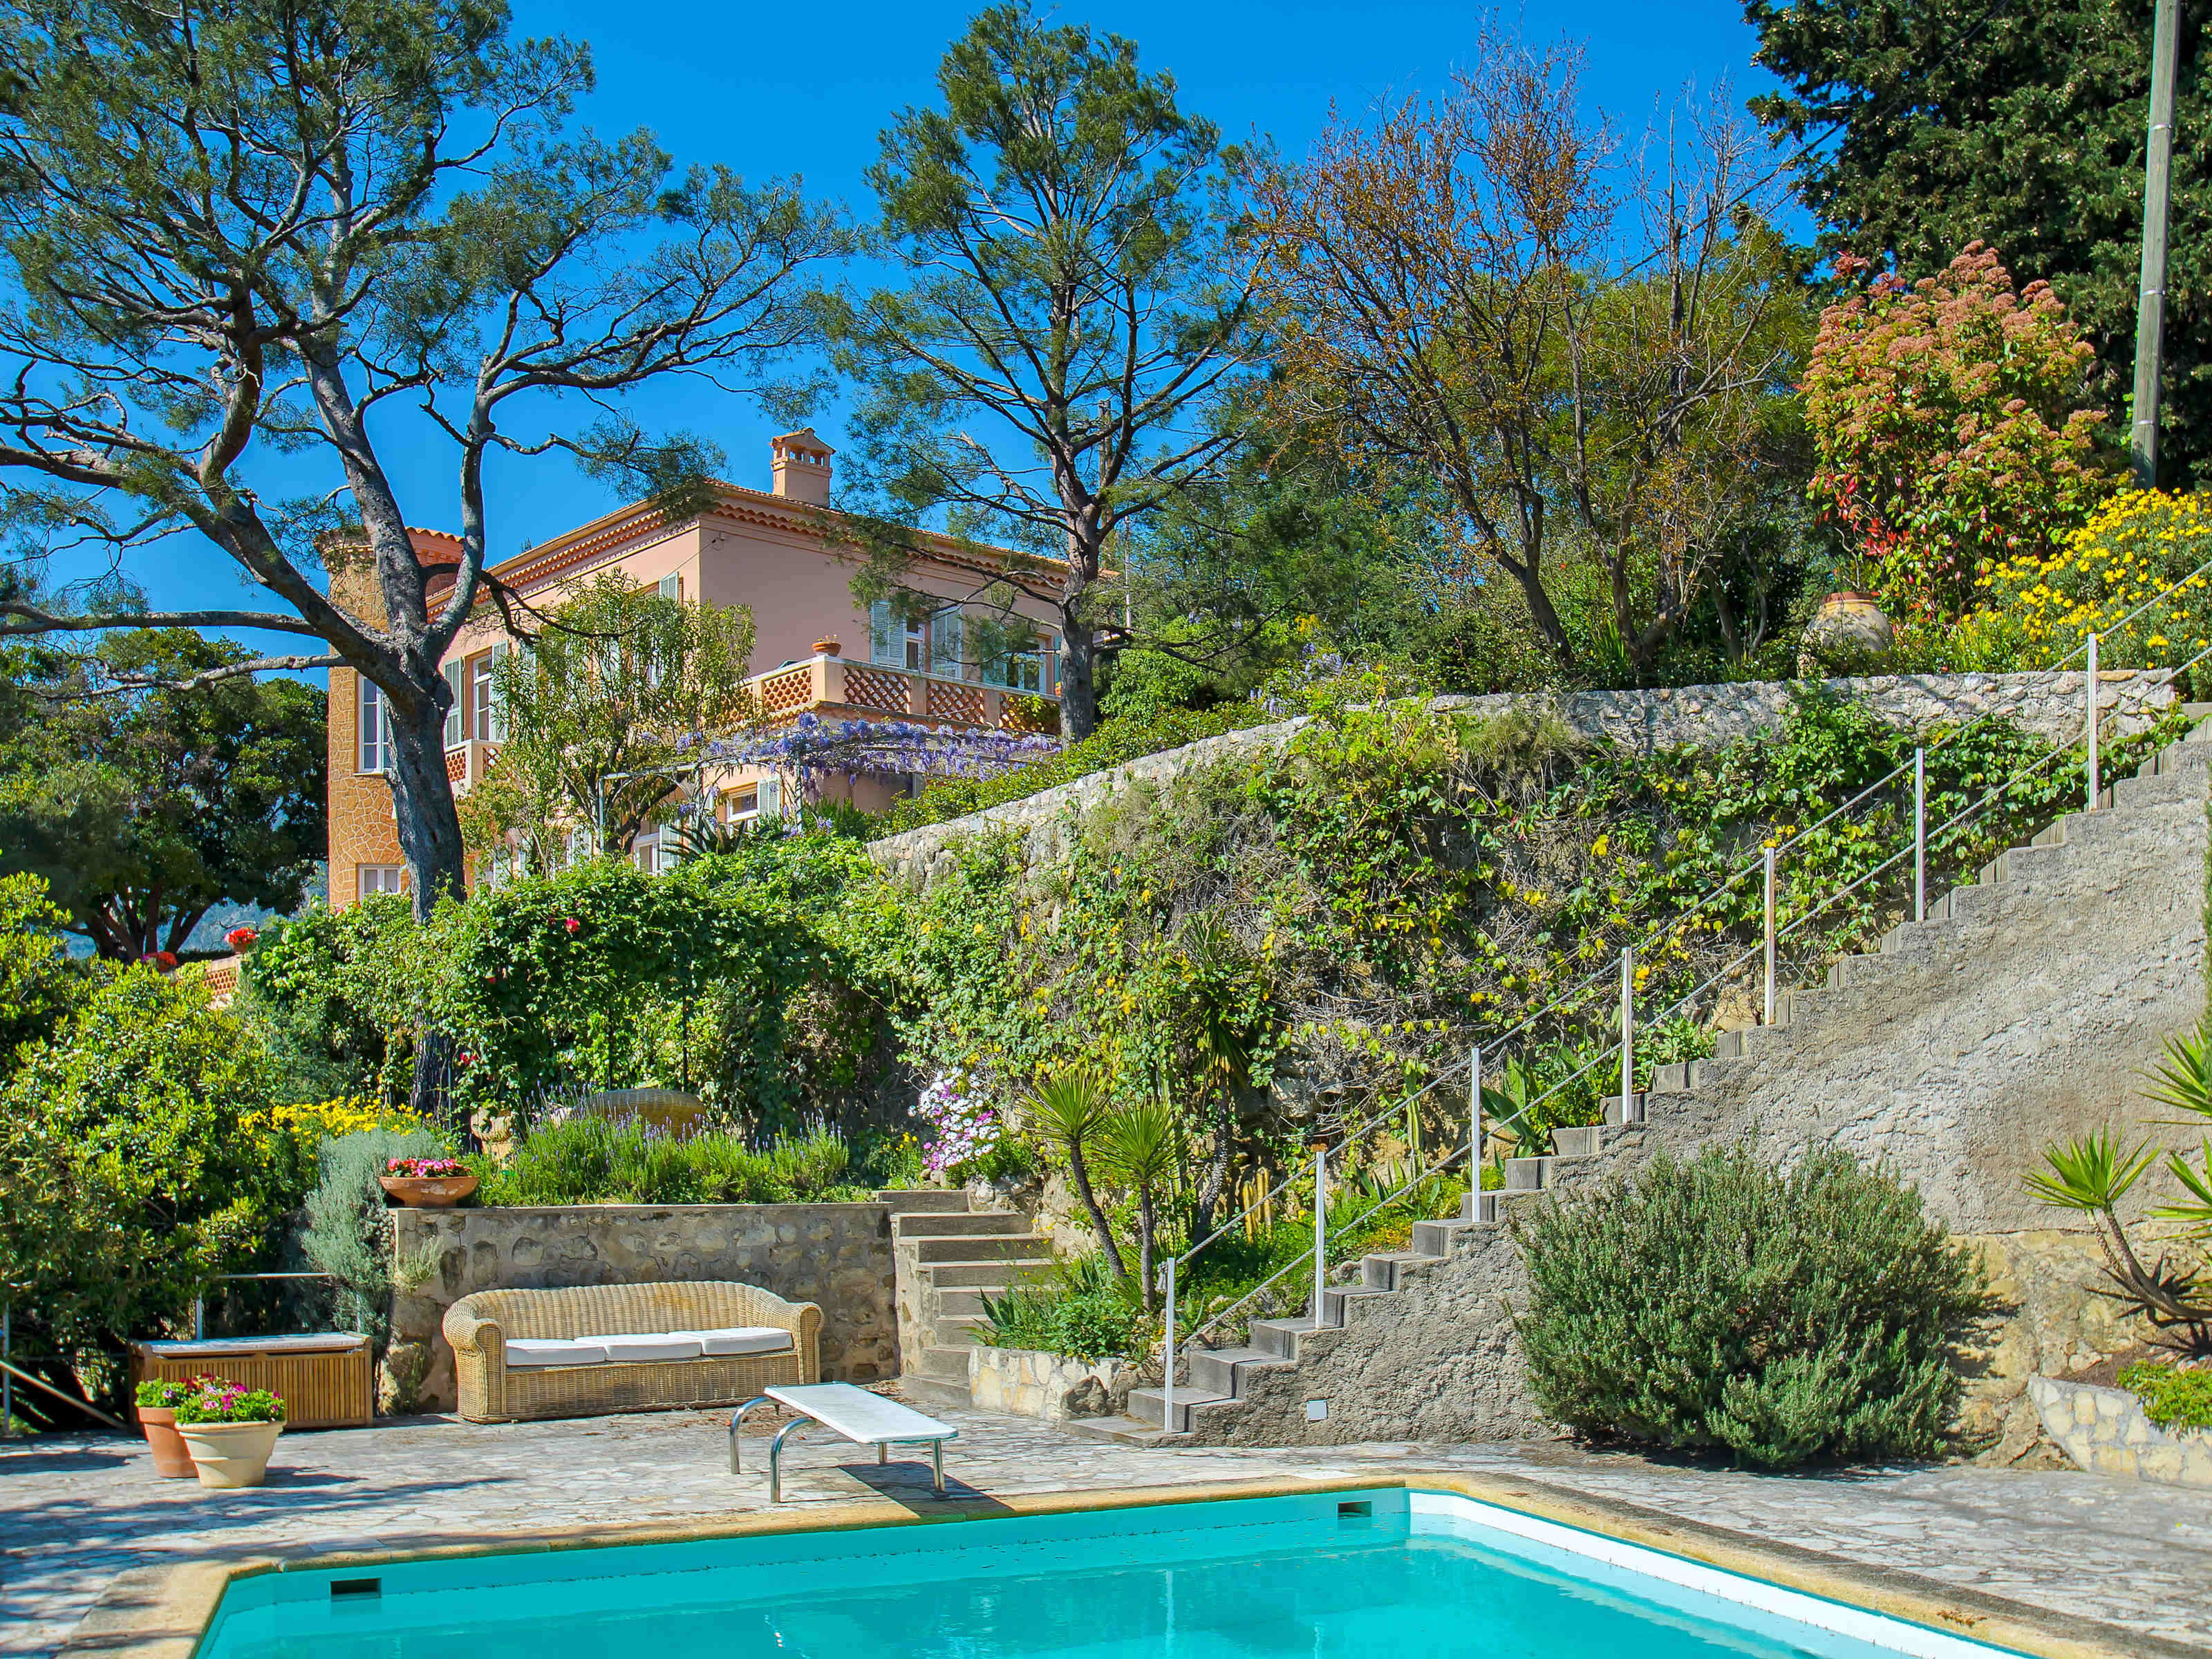 Other Residential for Sale at Charming villa with sea views for sale in Menton, French Riviera Other Provence-Alpes-Cote D'Azur, Provence-Alpes-Cote D'Azur 06500 France